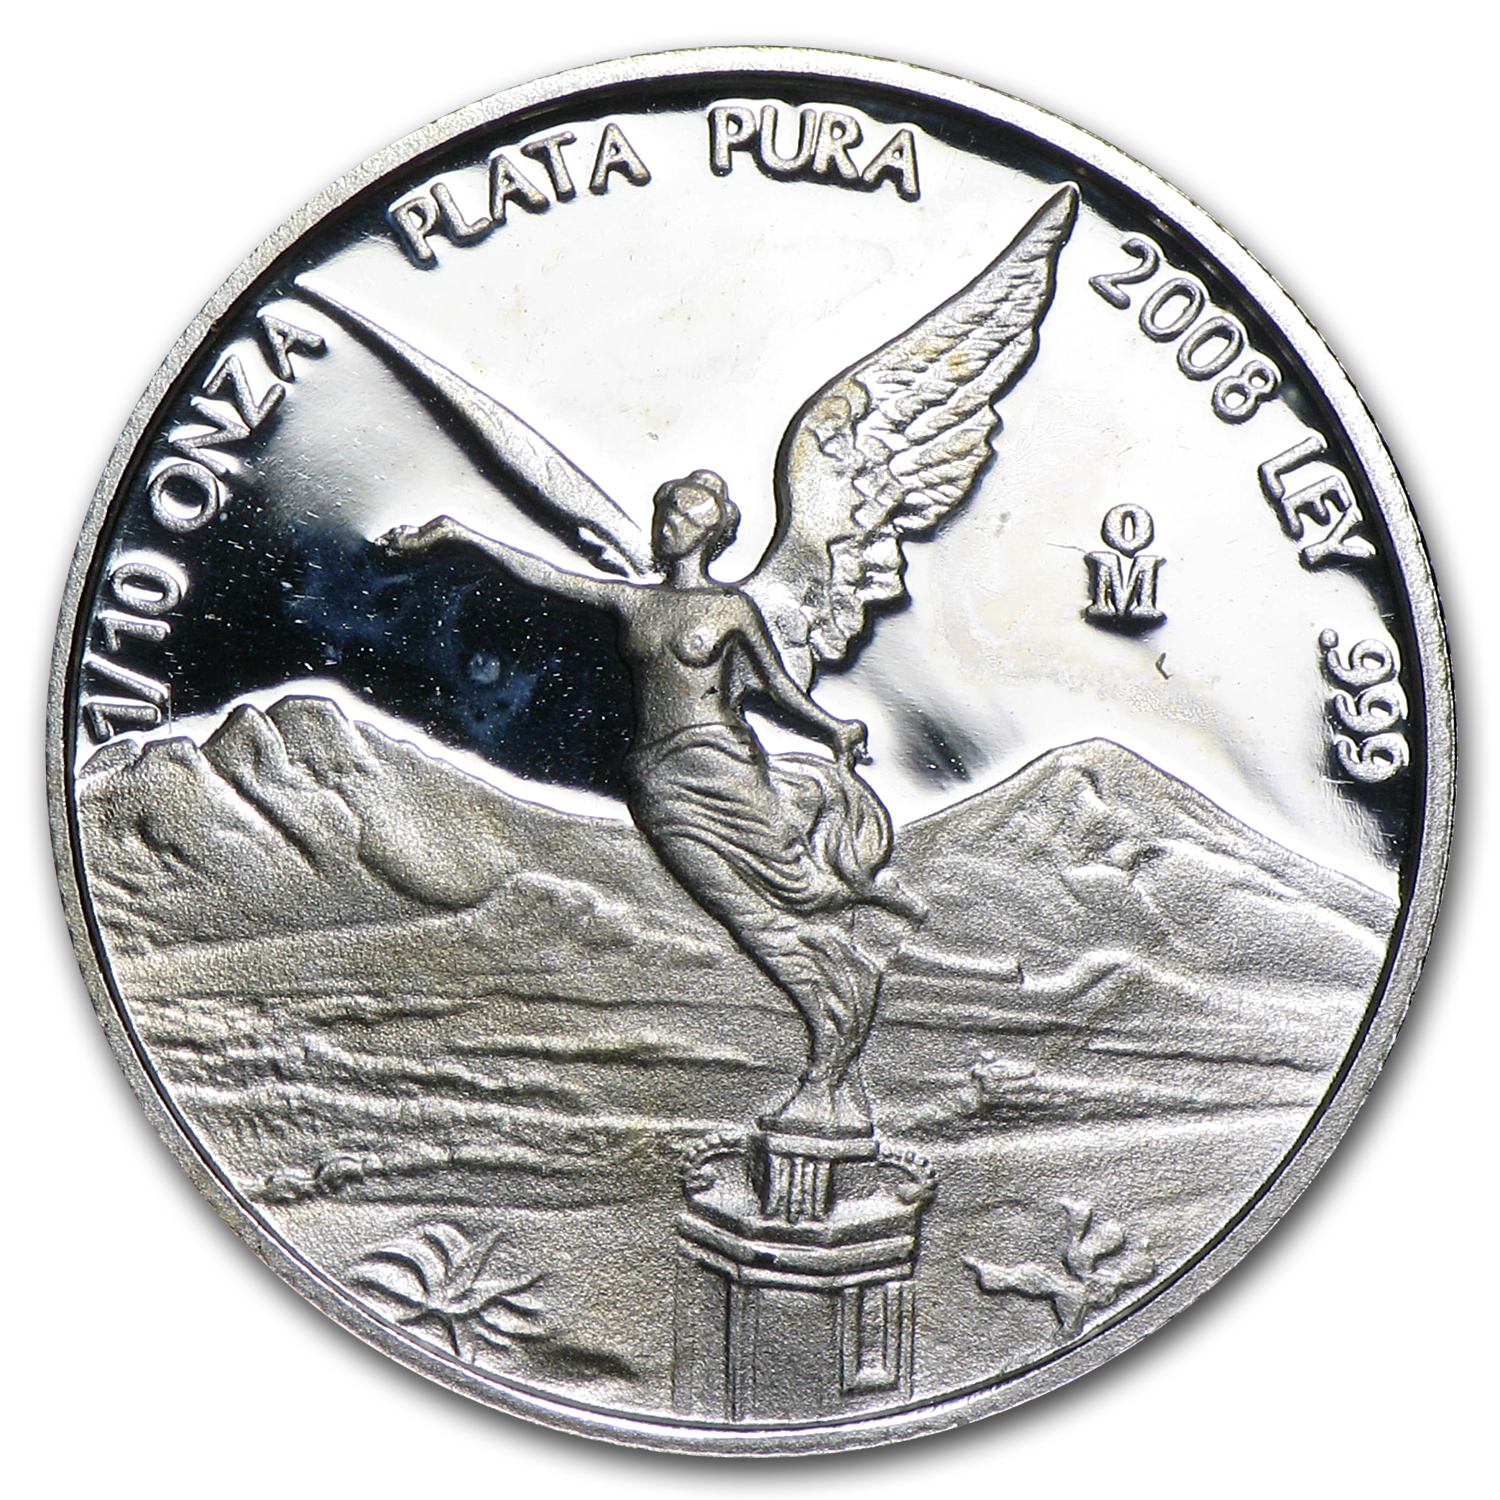 2008 Mexico 1/10 oz Silver Libertad Proof